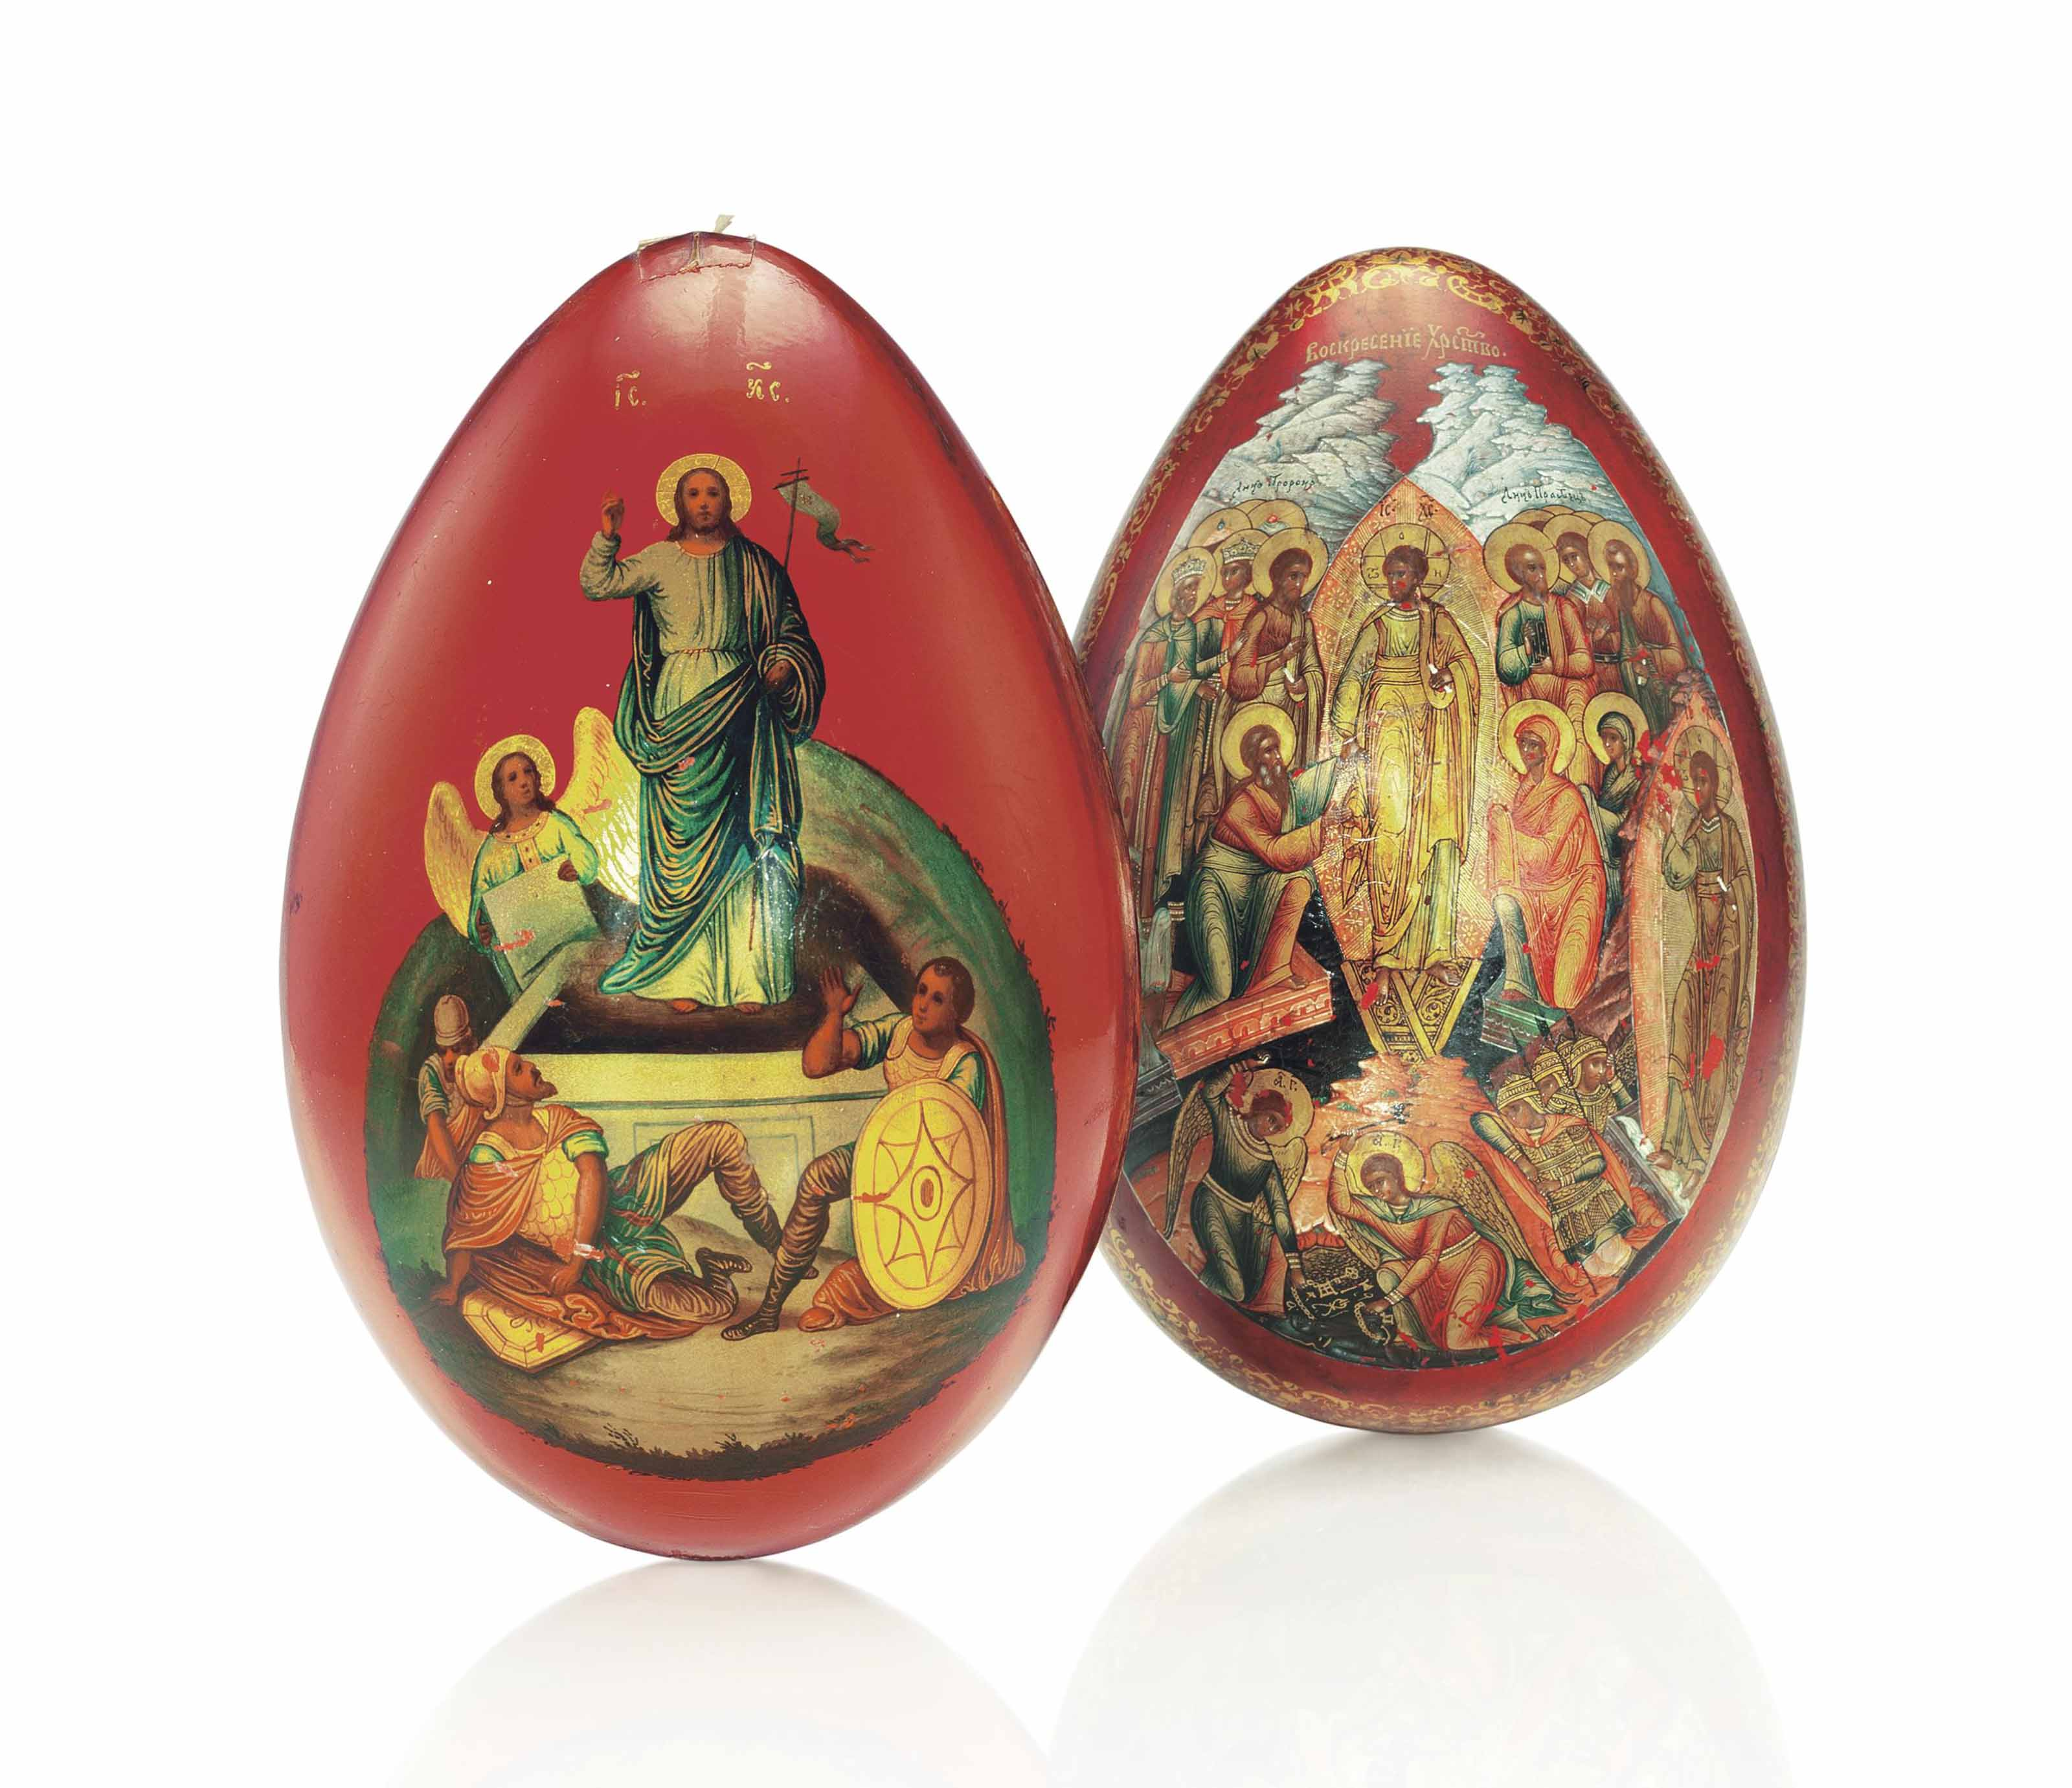 TWO PAPIER-MACHE EASTER EGGS